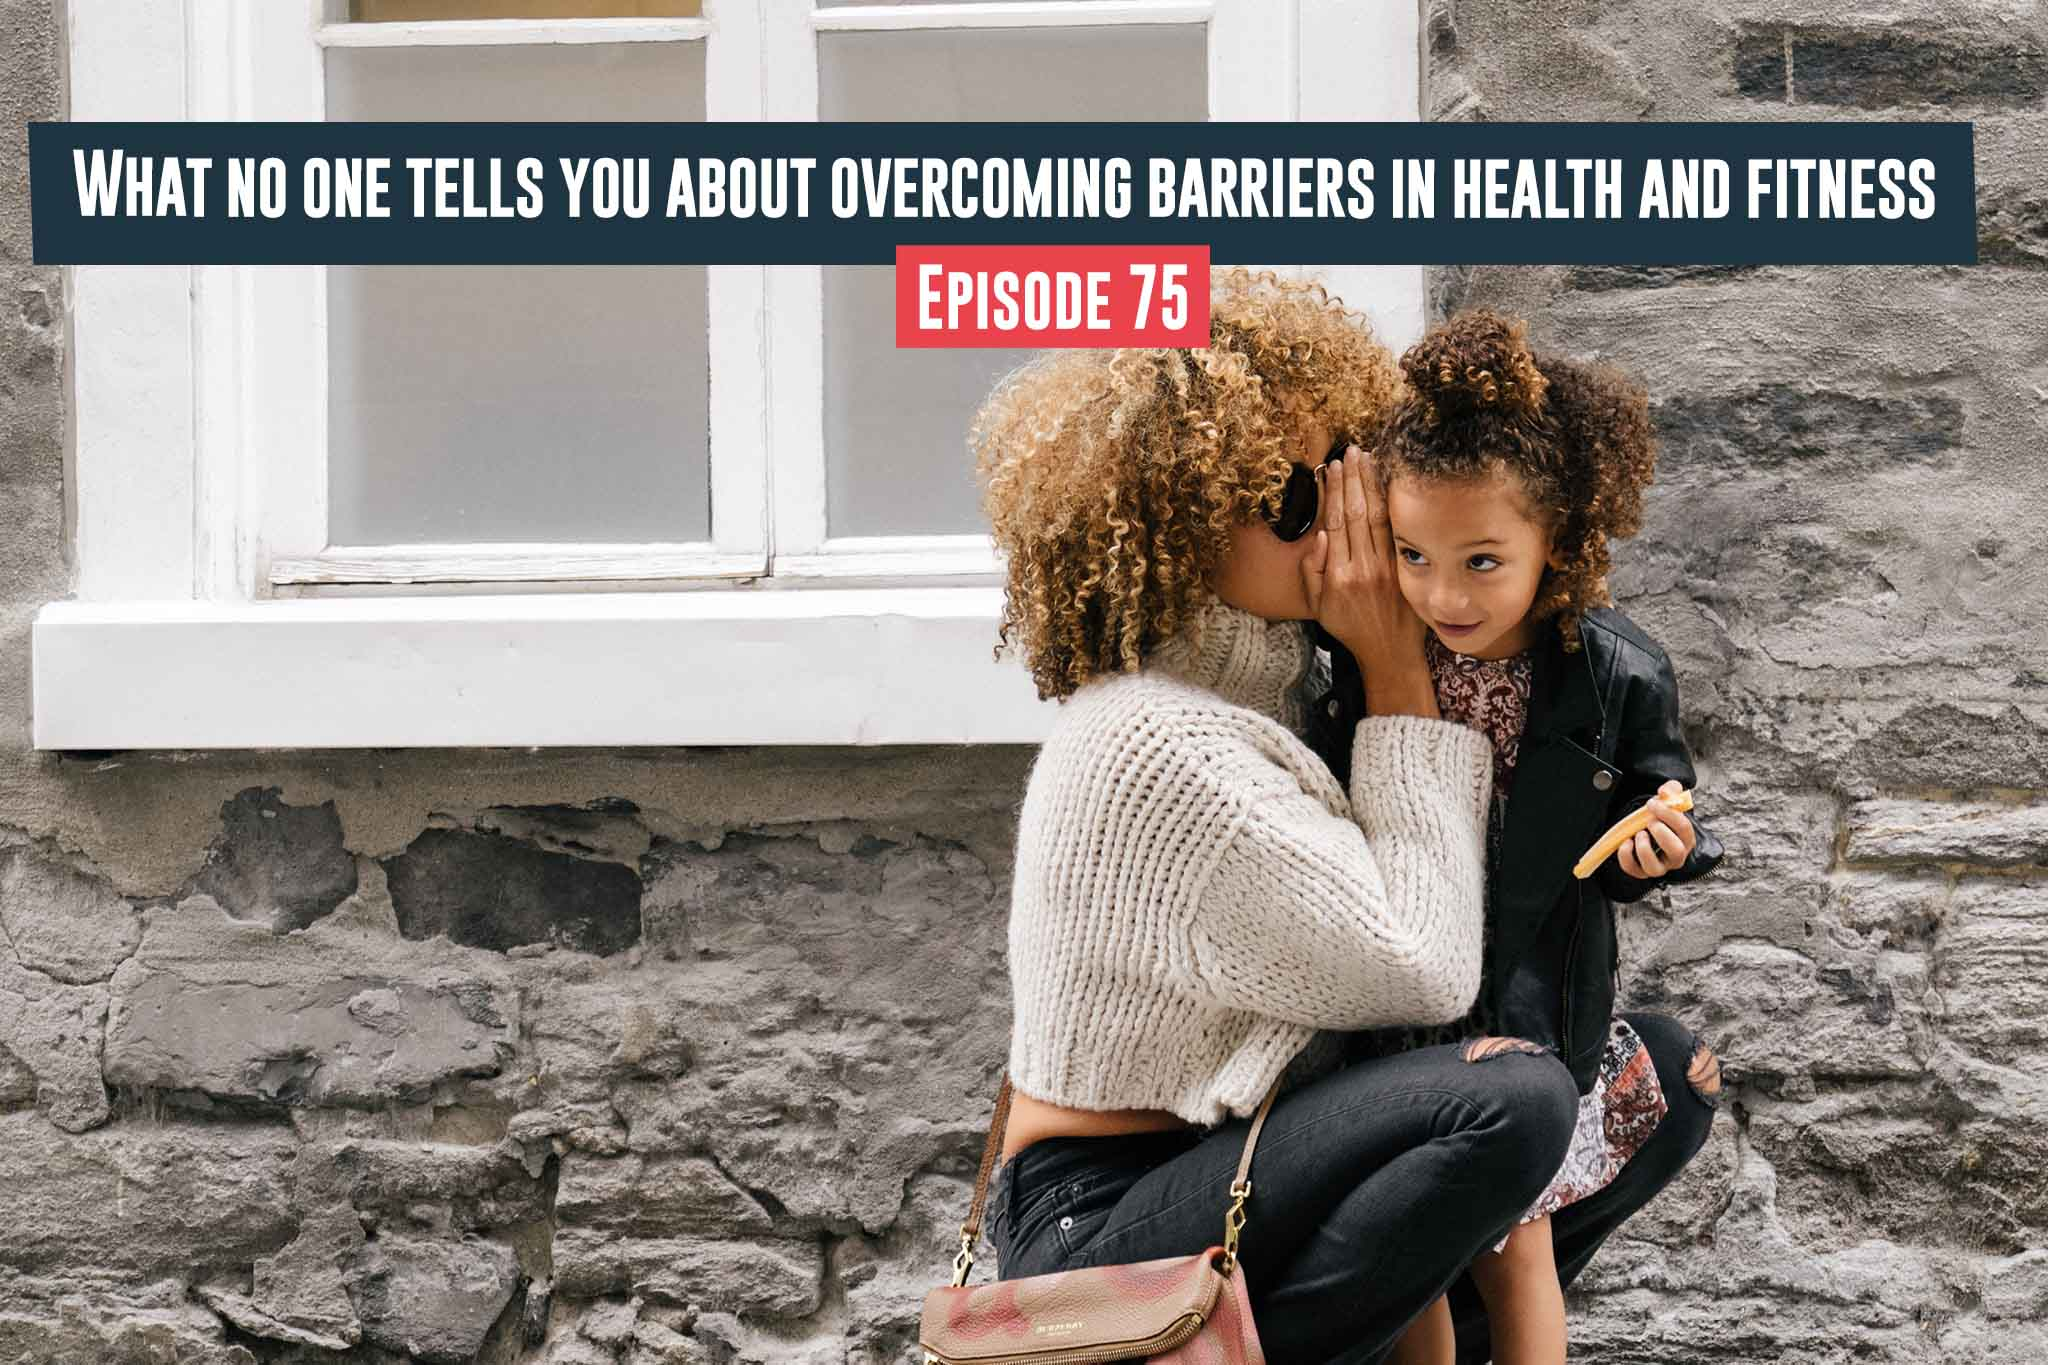 Overcoming Barriers In Health And Fitness